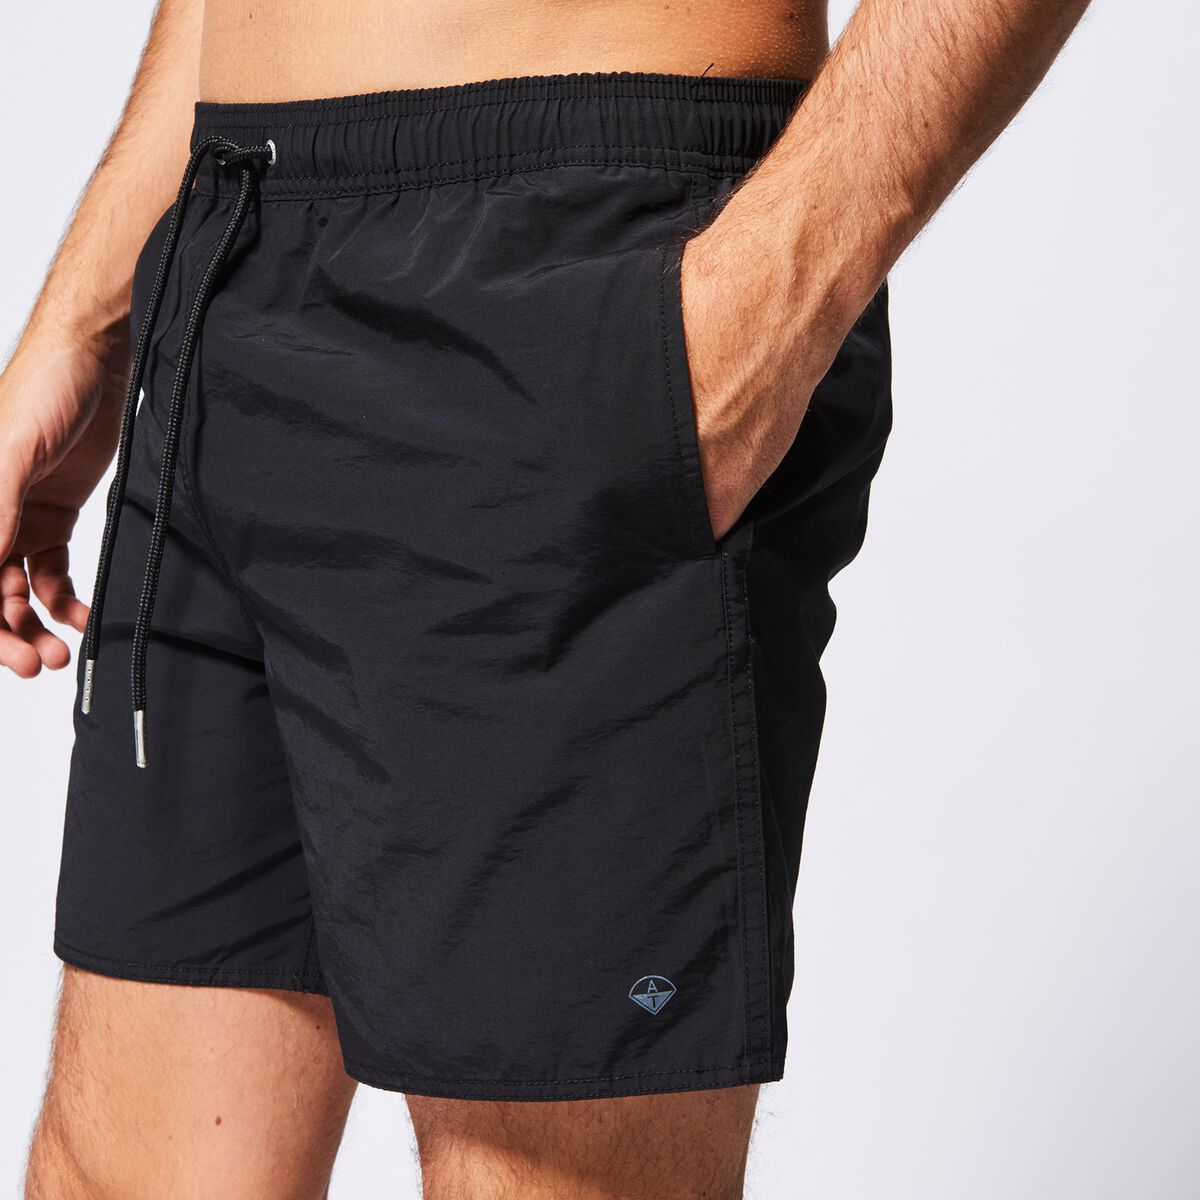 968914109bd Men Swimming trunks Arizona Black Buy Online